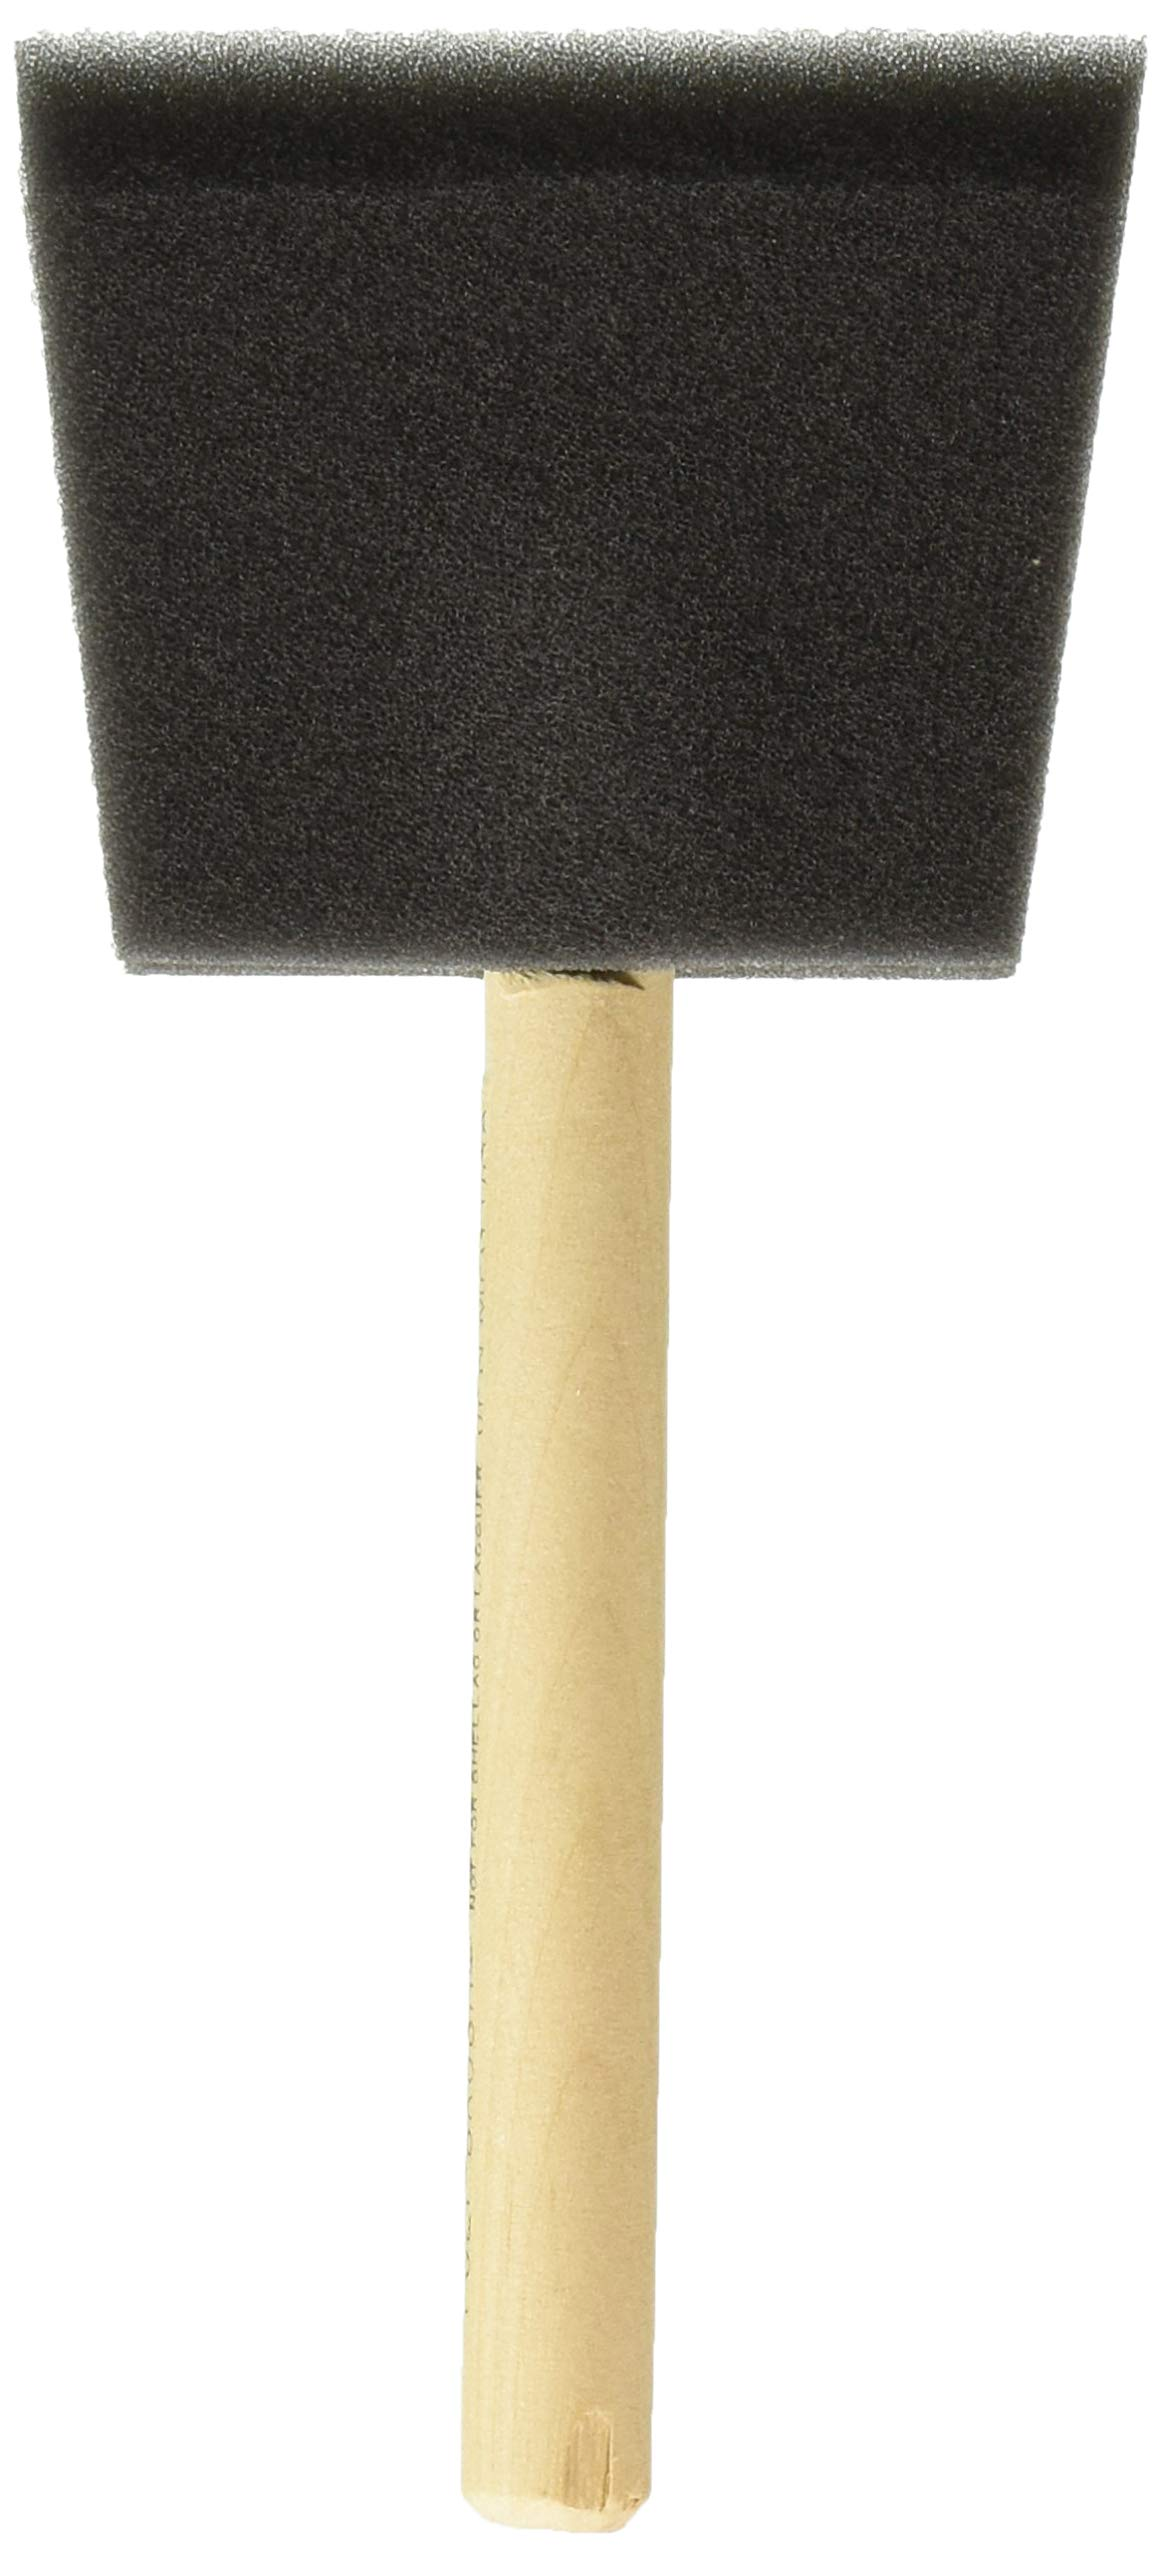 Jen Manufacturing Inc. 3 Not Not Available Jen Poly Foam Brush 3'' Box of 36, Pack of 36 by Jen Manufacturing